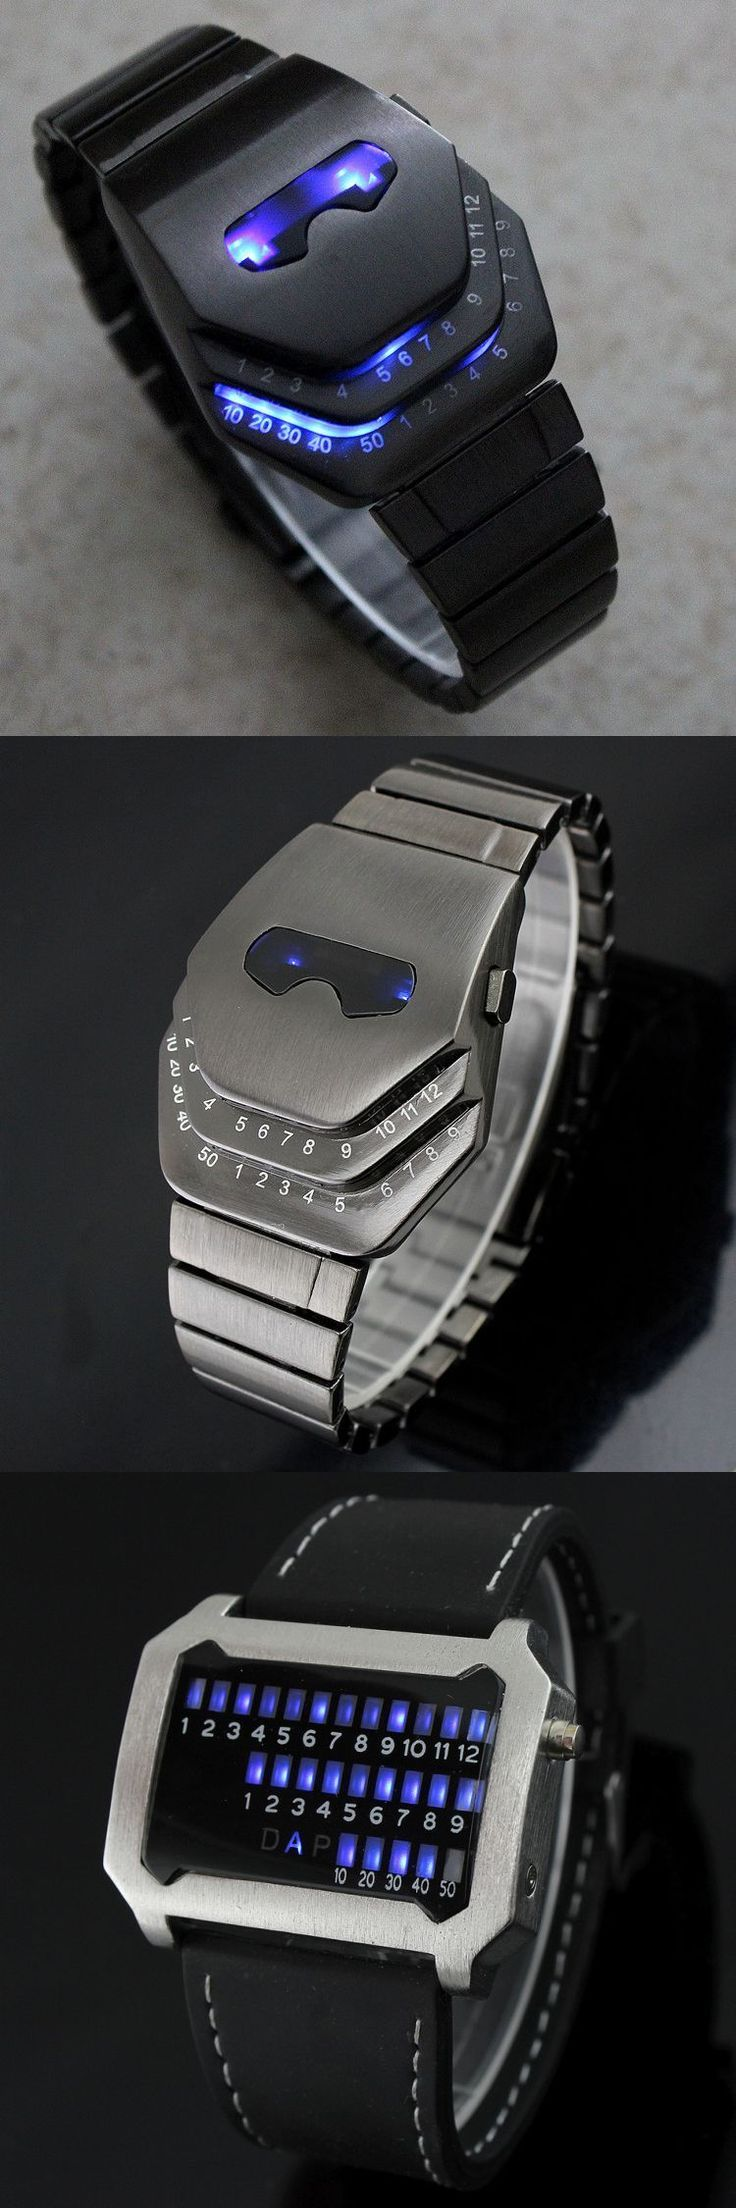 Pin by Rick D on Future Tech Electronic gadgets for men